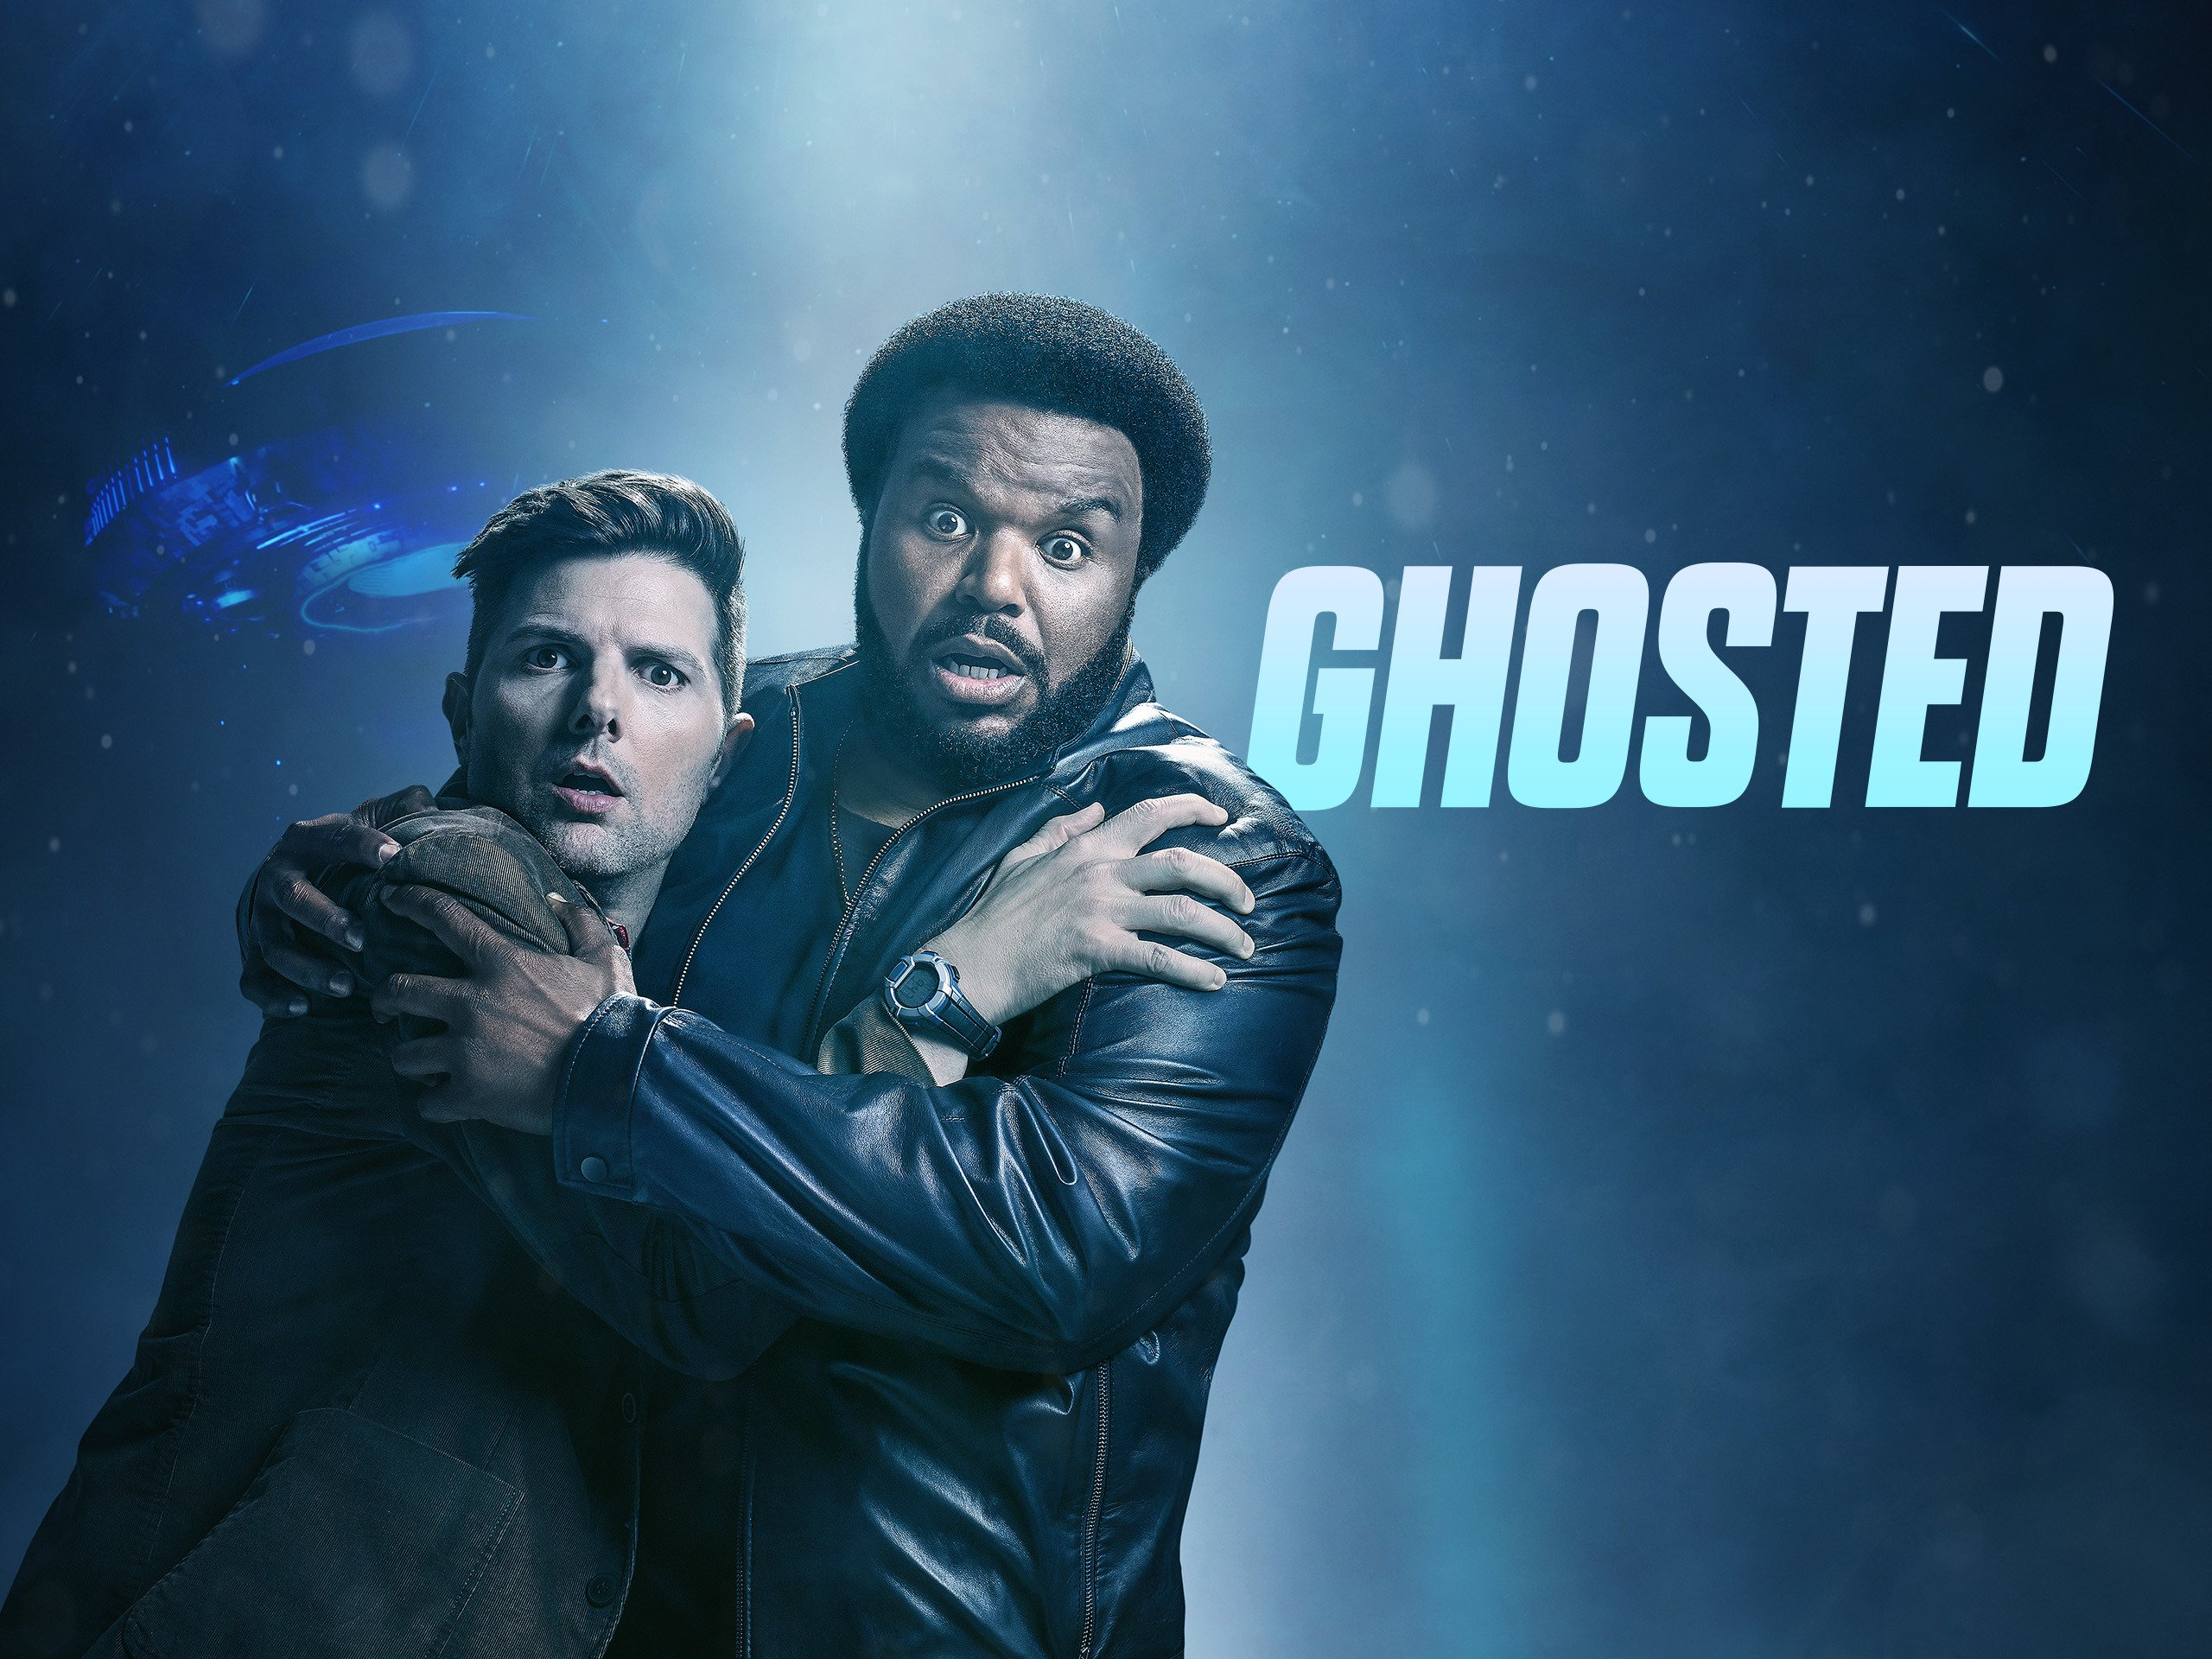 Amazon.co.uk: Watch Ghosted Season 1 | Prime Video